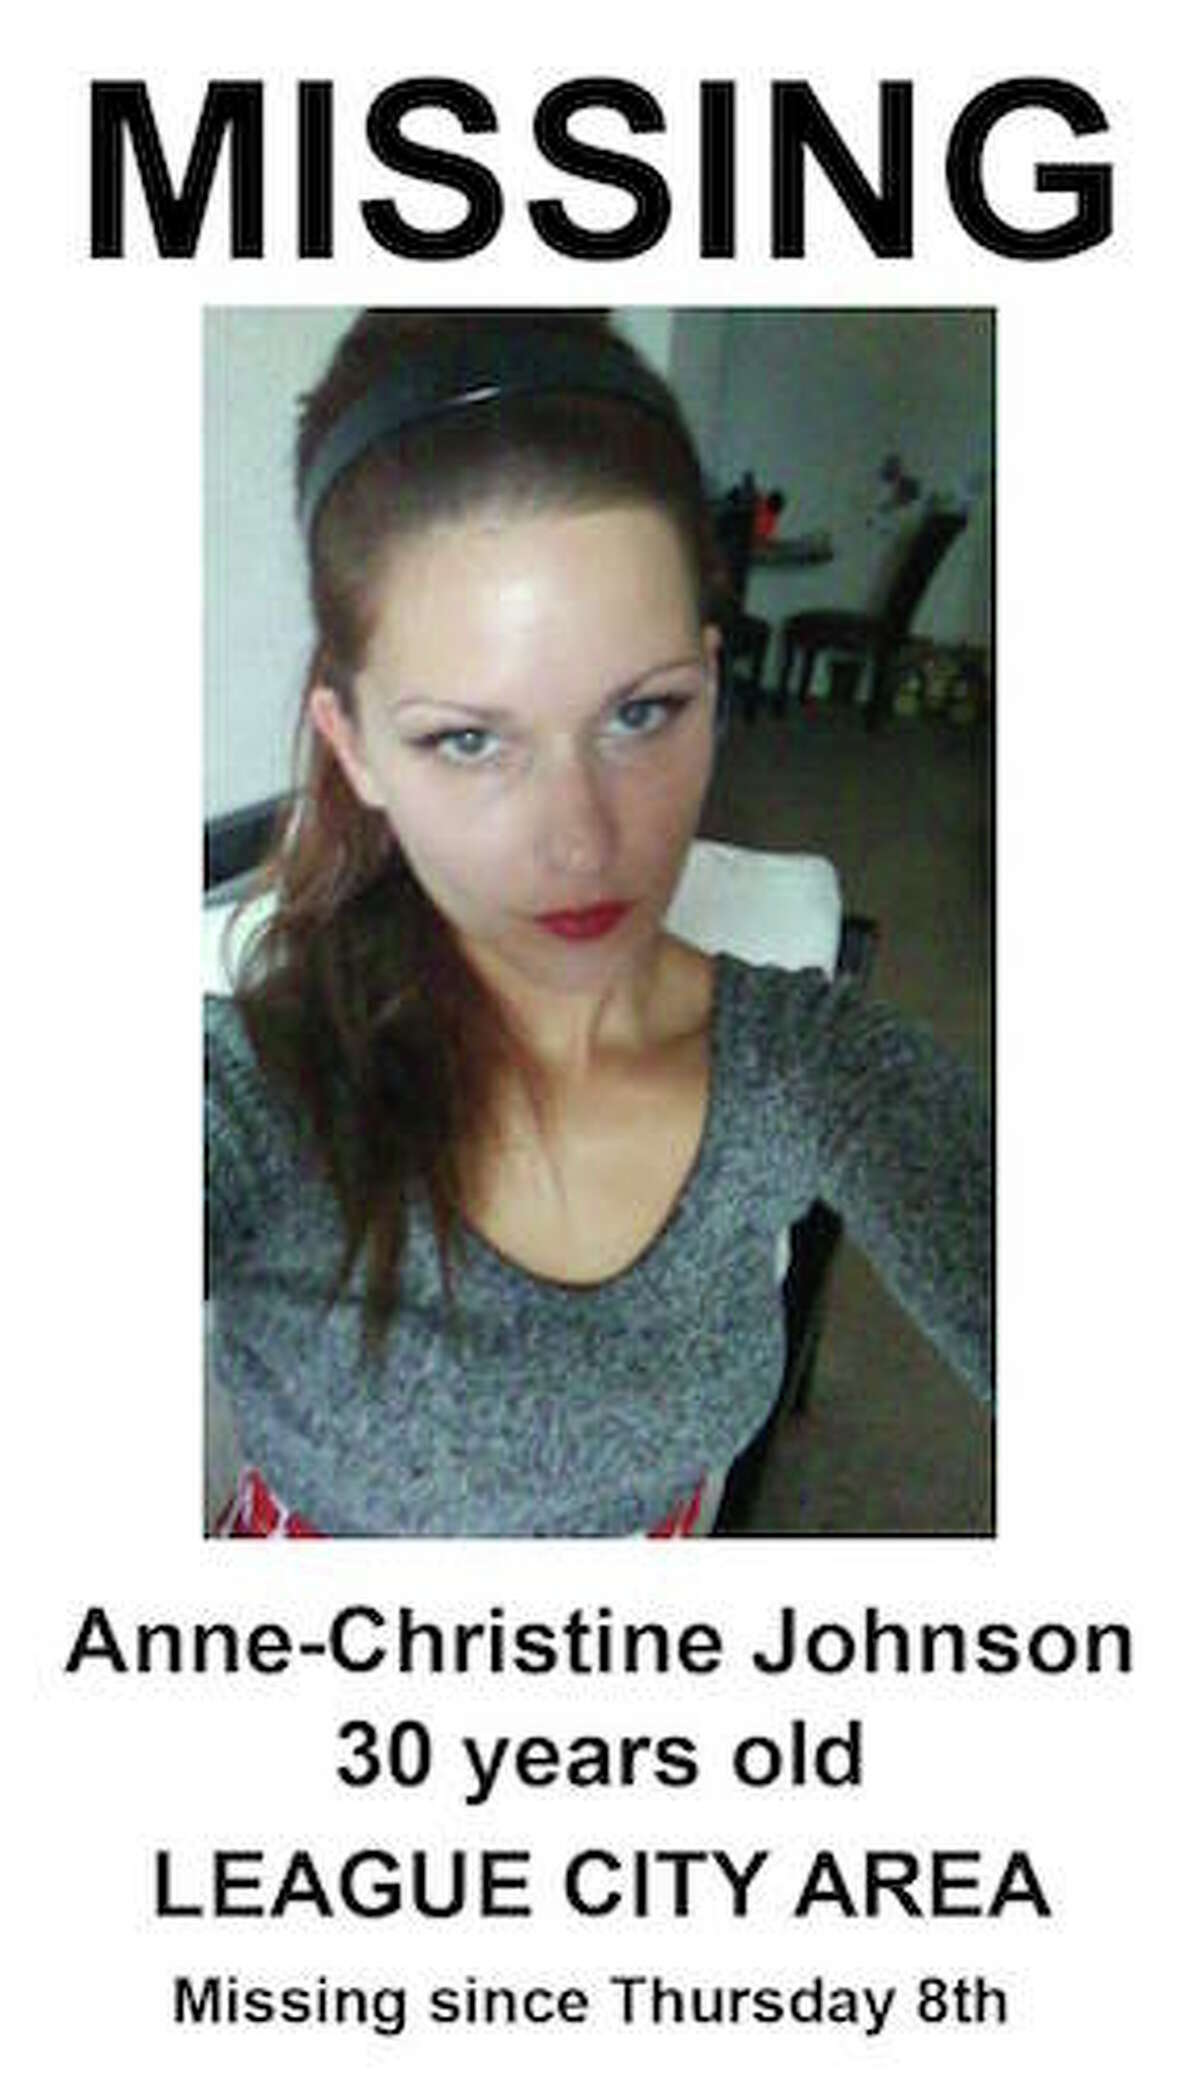 League City Police Department is seeking assistance in locating a 30- year-old League City woman. Anne-Christine Johnson was reported missing Monday, December 12, 2016 by her father. Last contact with Johnson was made by electronic communication on the evening of December 8, 2016. Anne is described as a white female, approximately 5' 2é?